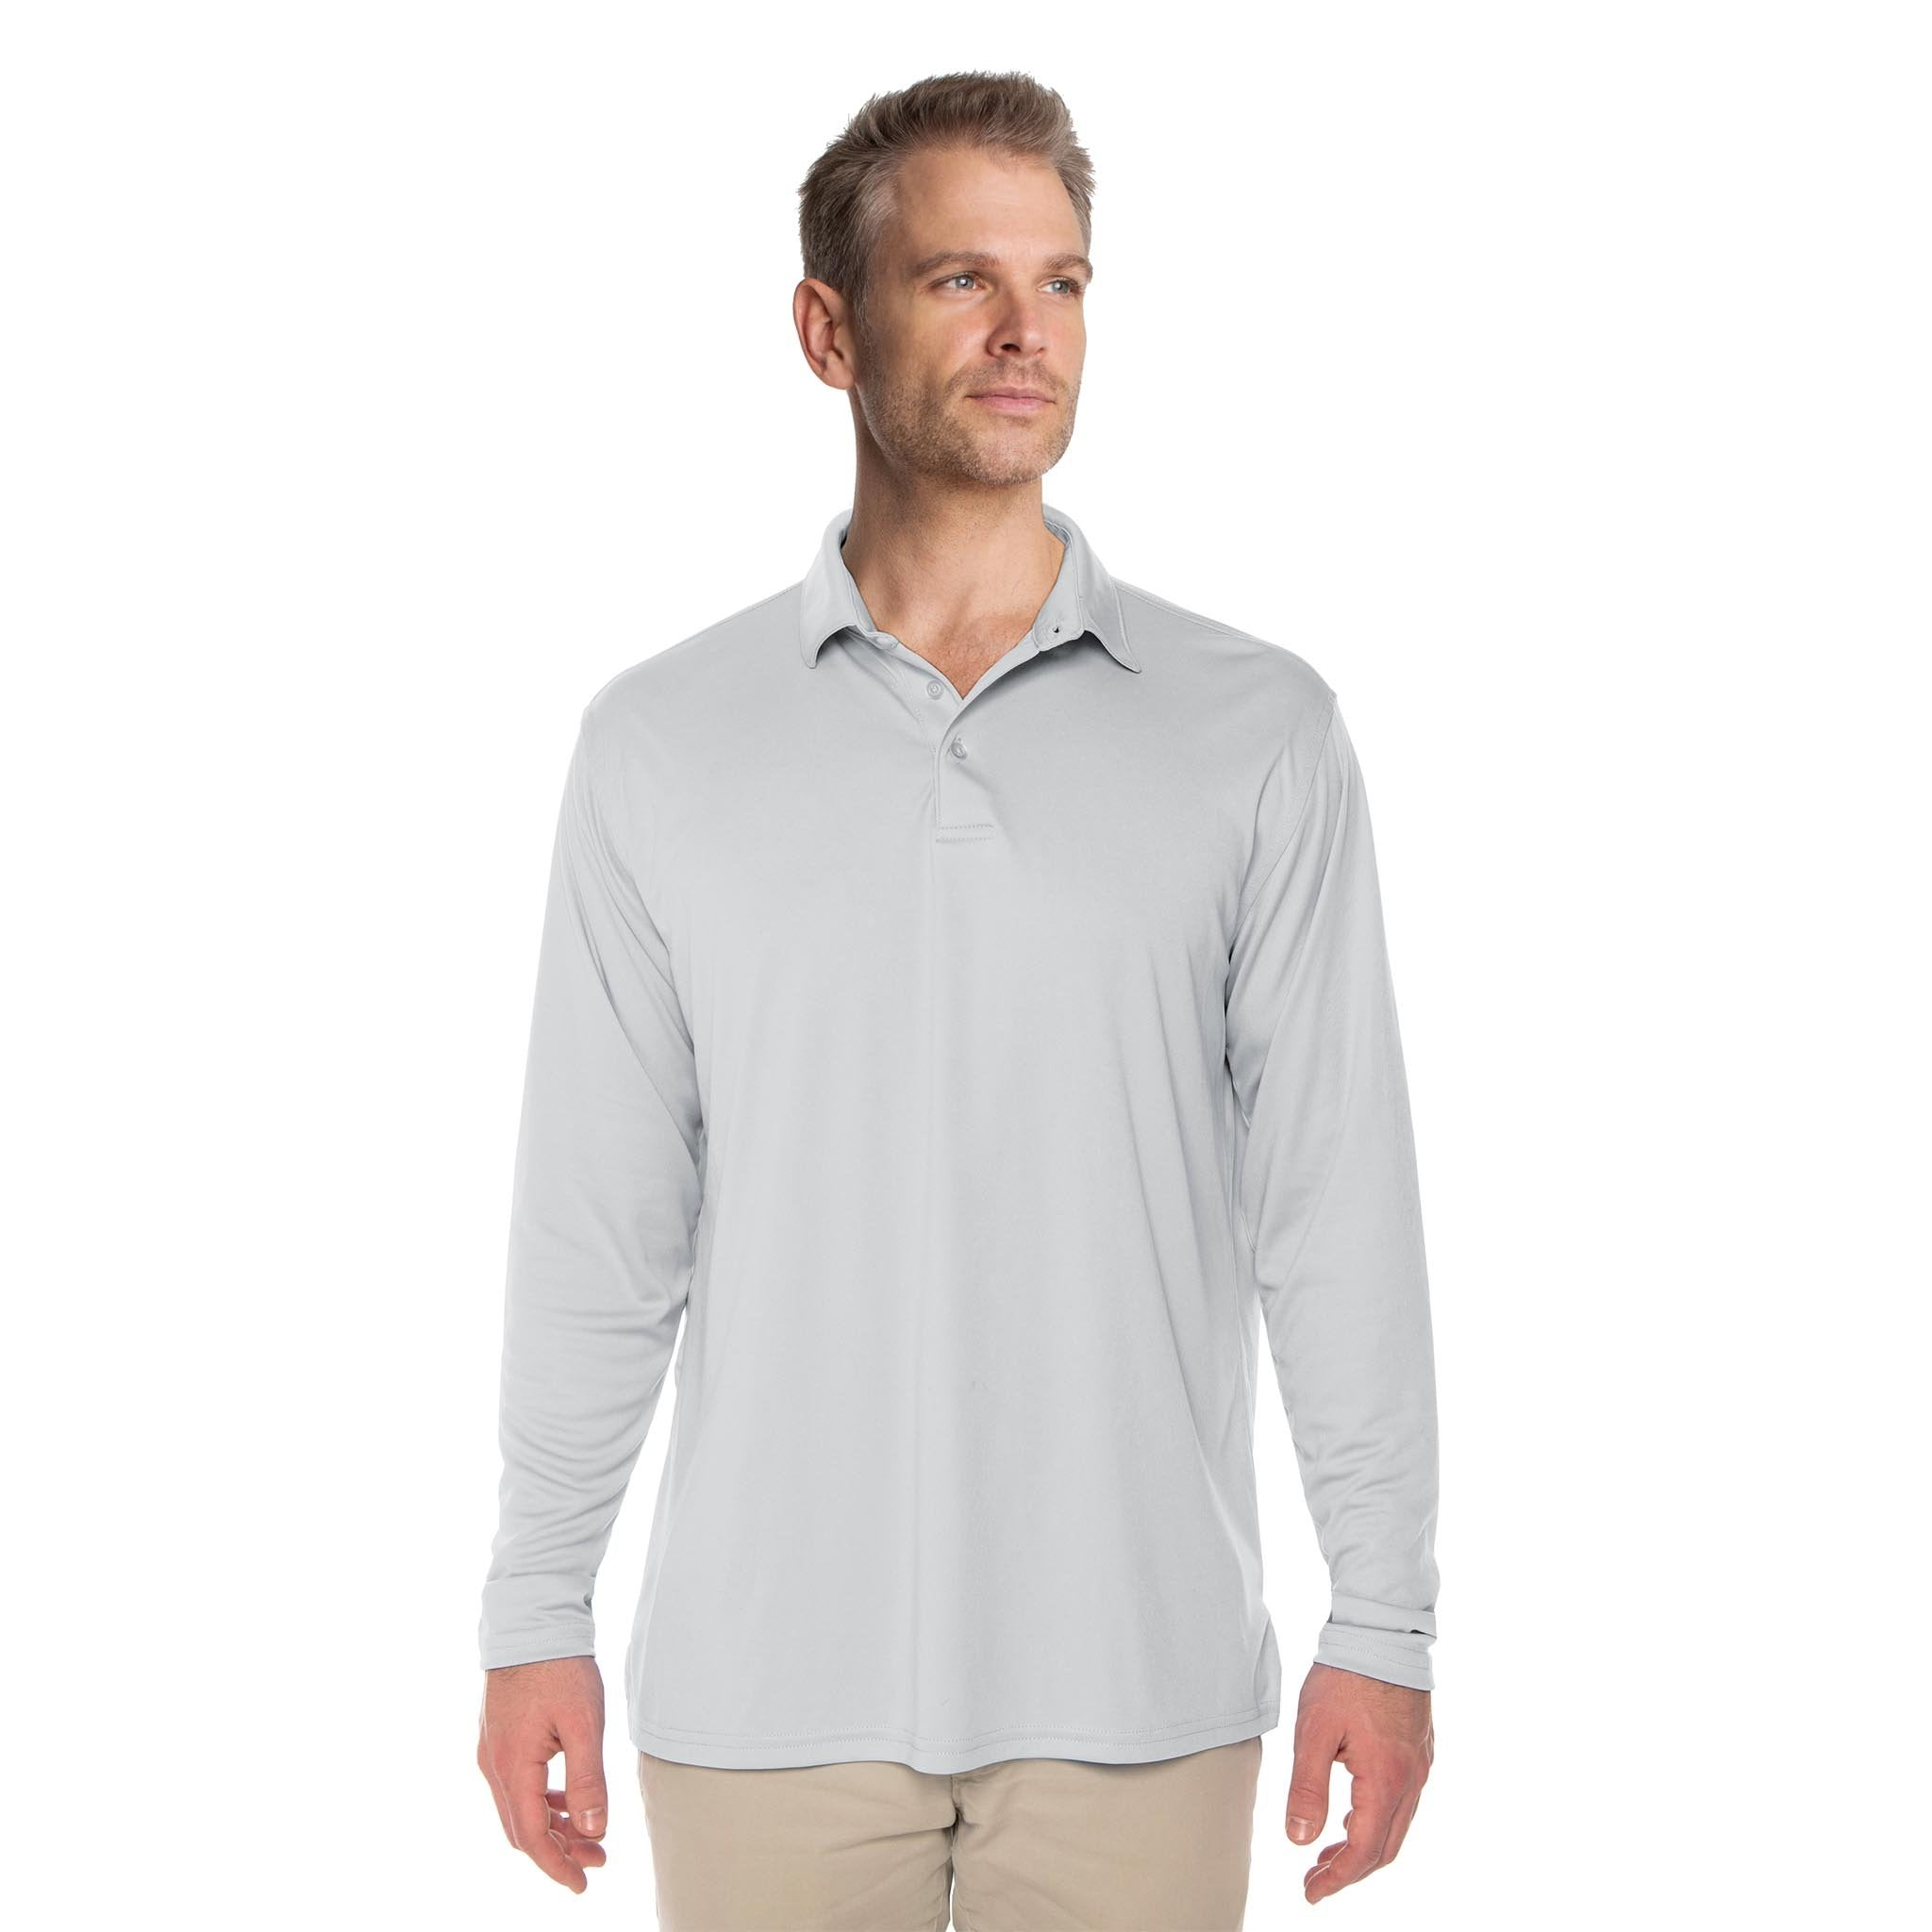 M910PG Solar Polo Long Sleeve - Pearl Grey